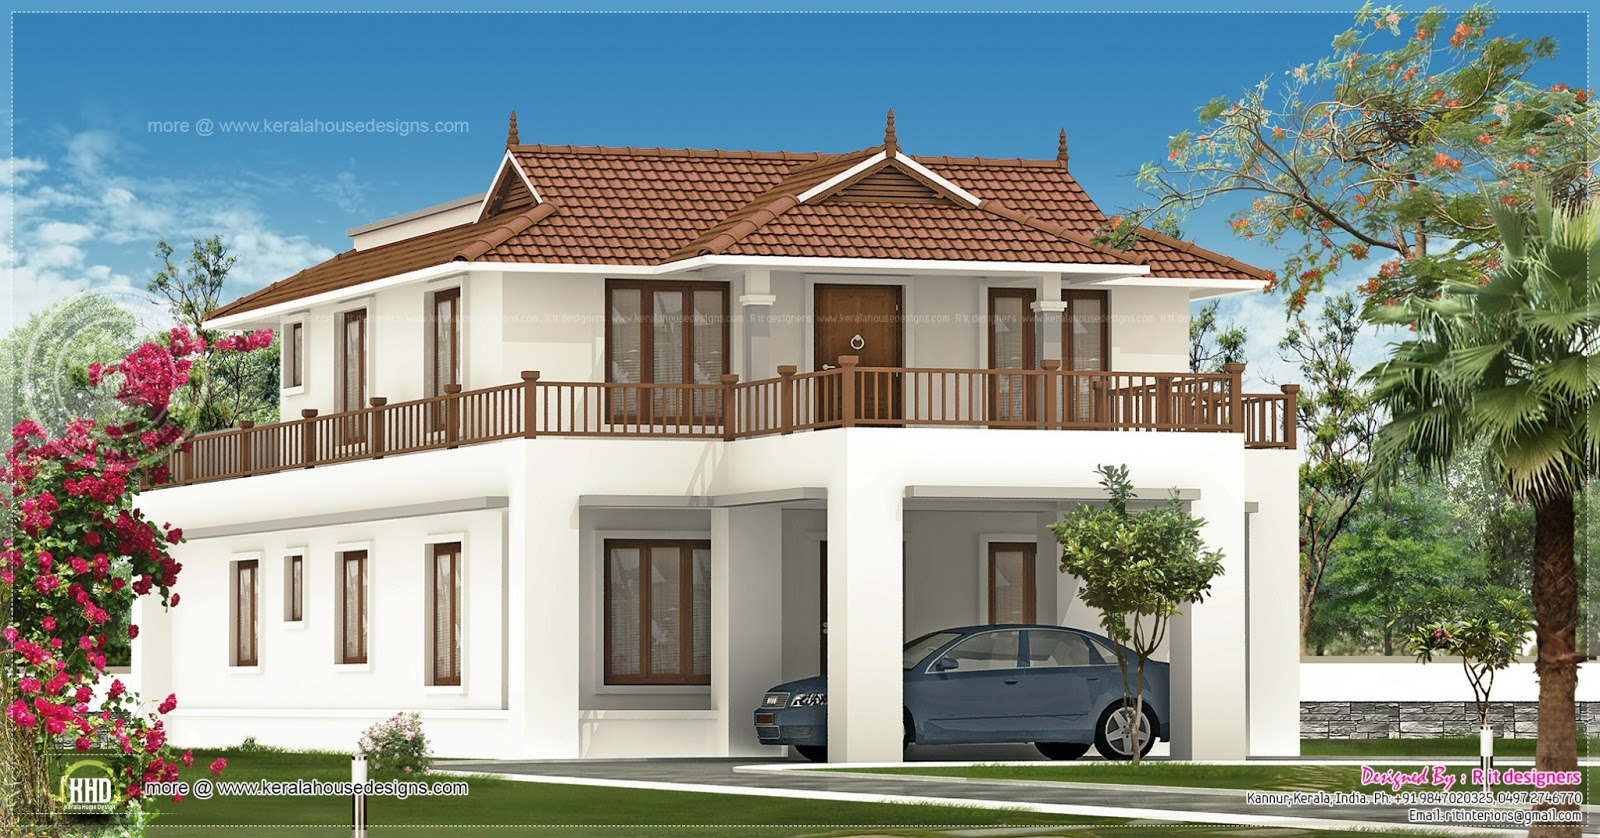 2820 square feet house exterior design home kerala plans for Home exterior design photos